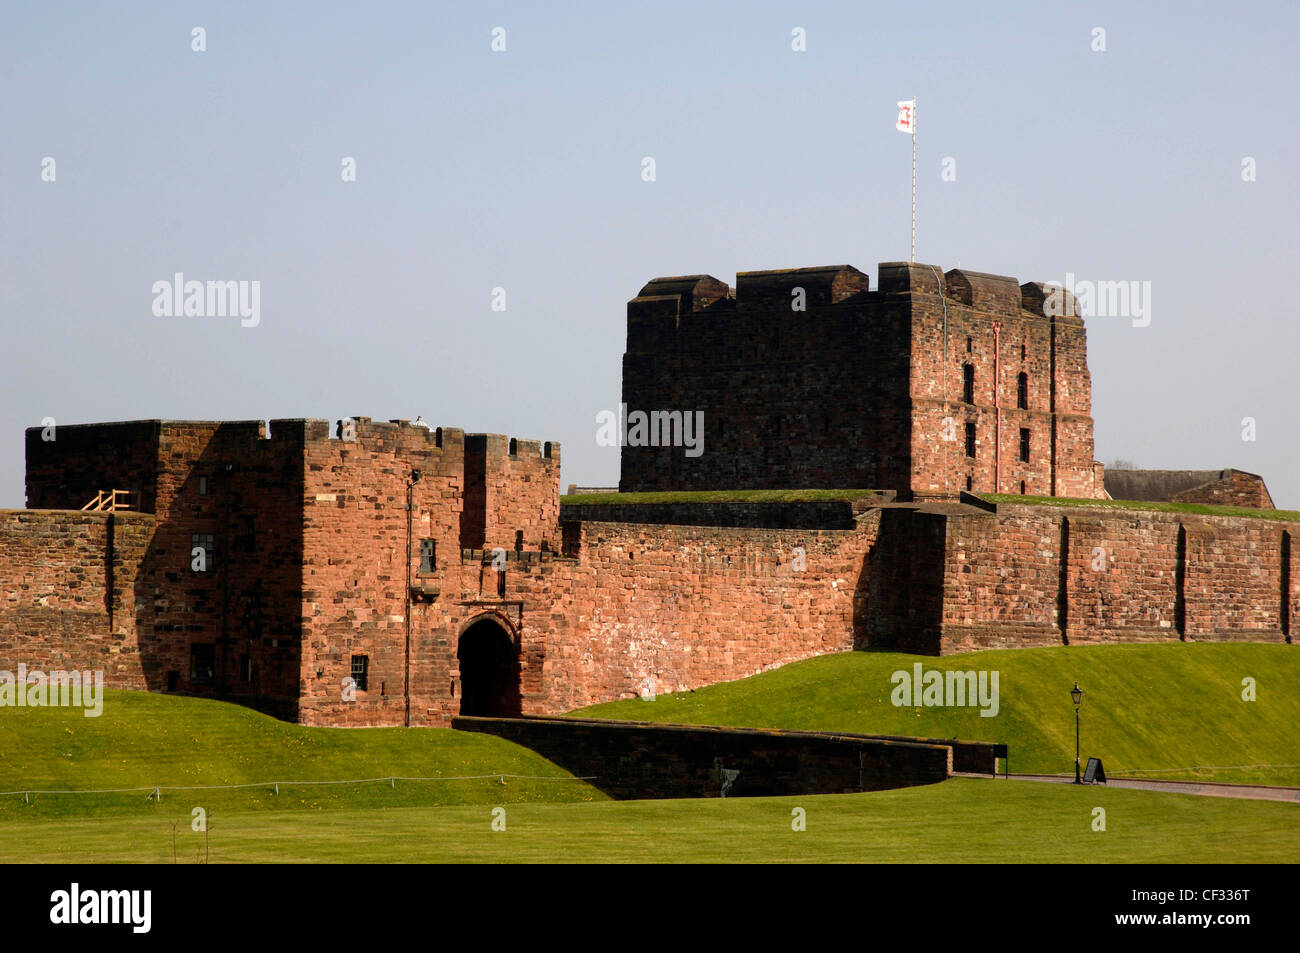 Carlisle Castle, a medieval fortress that has played a significant role in the disputed border between England and - Stock Image